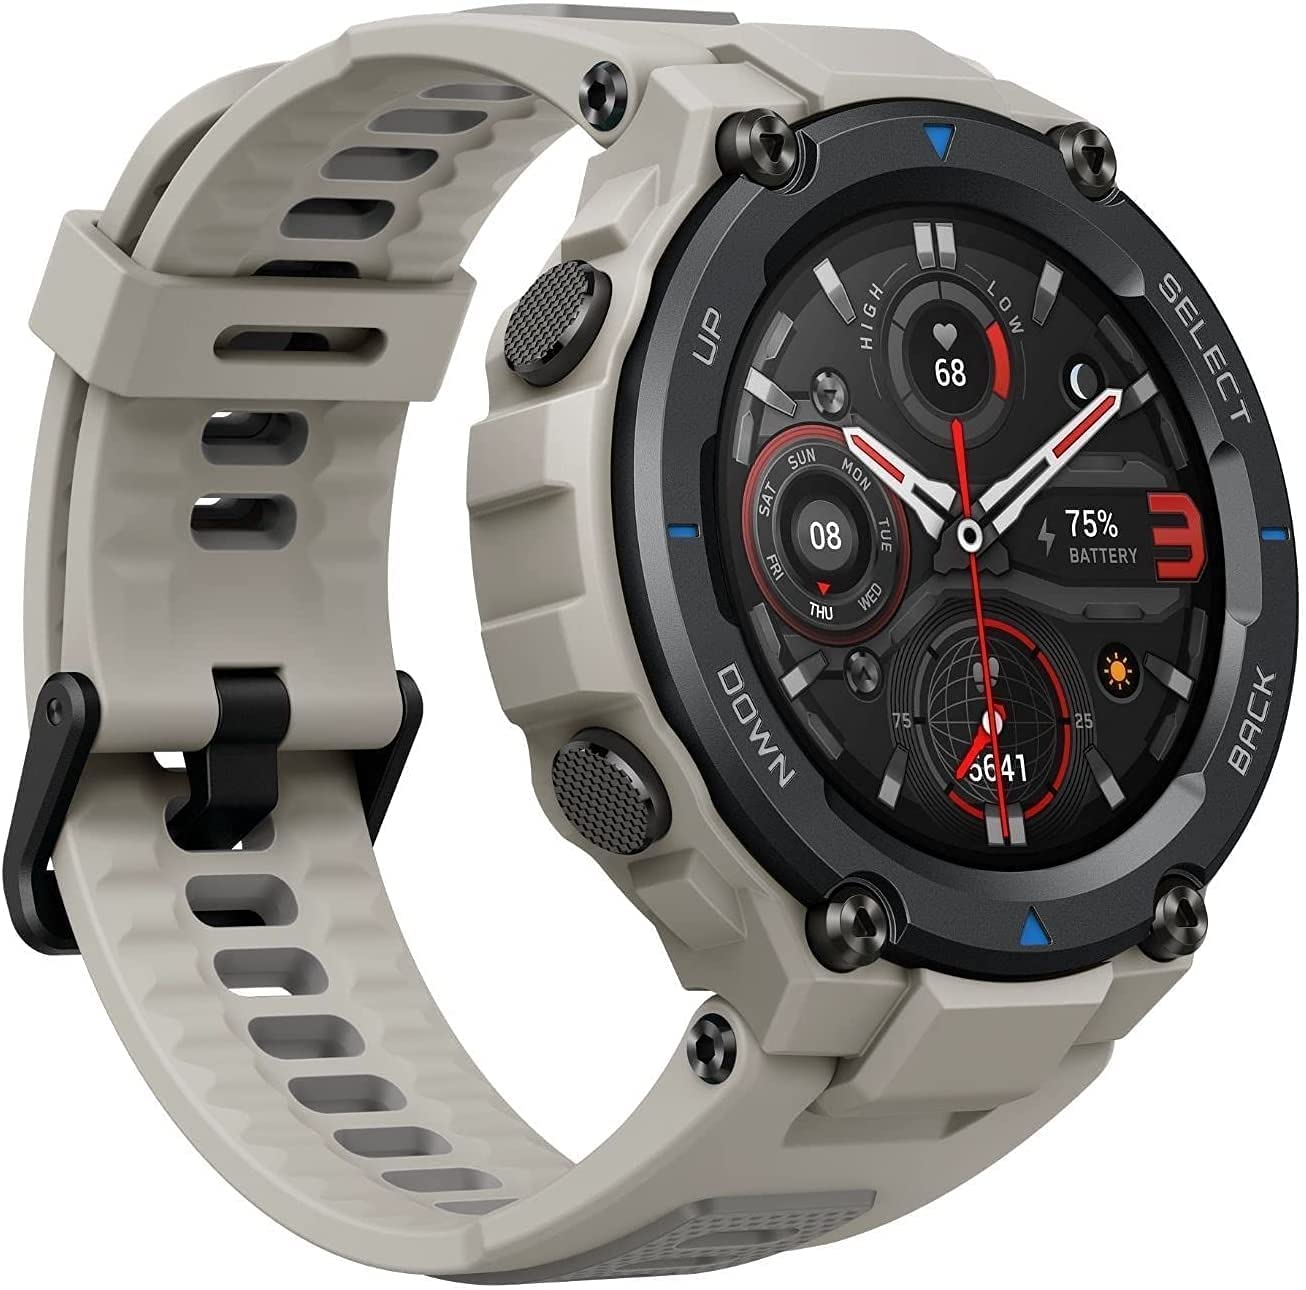 Amazfit T-Rex Pro Smartwatch Fitness Watch with Built-in GPS, Military Standard Certified, 18 Day Battery Life, SpO2, Heart Rate Monitor, 100+ Sports Modes, 10 ATM Waterproof, Music Control, Gray